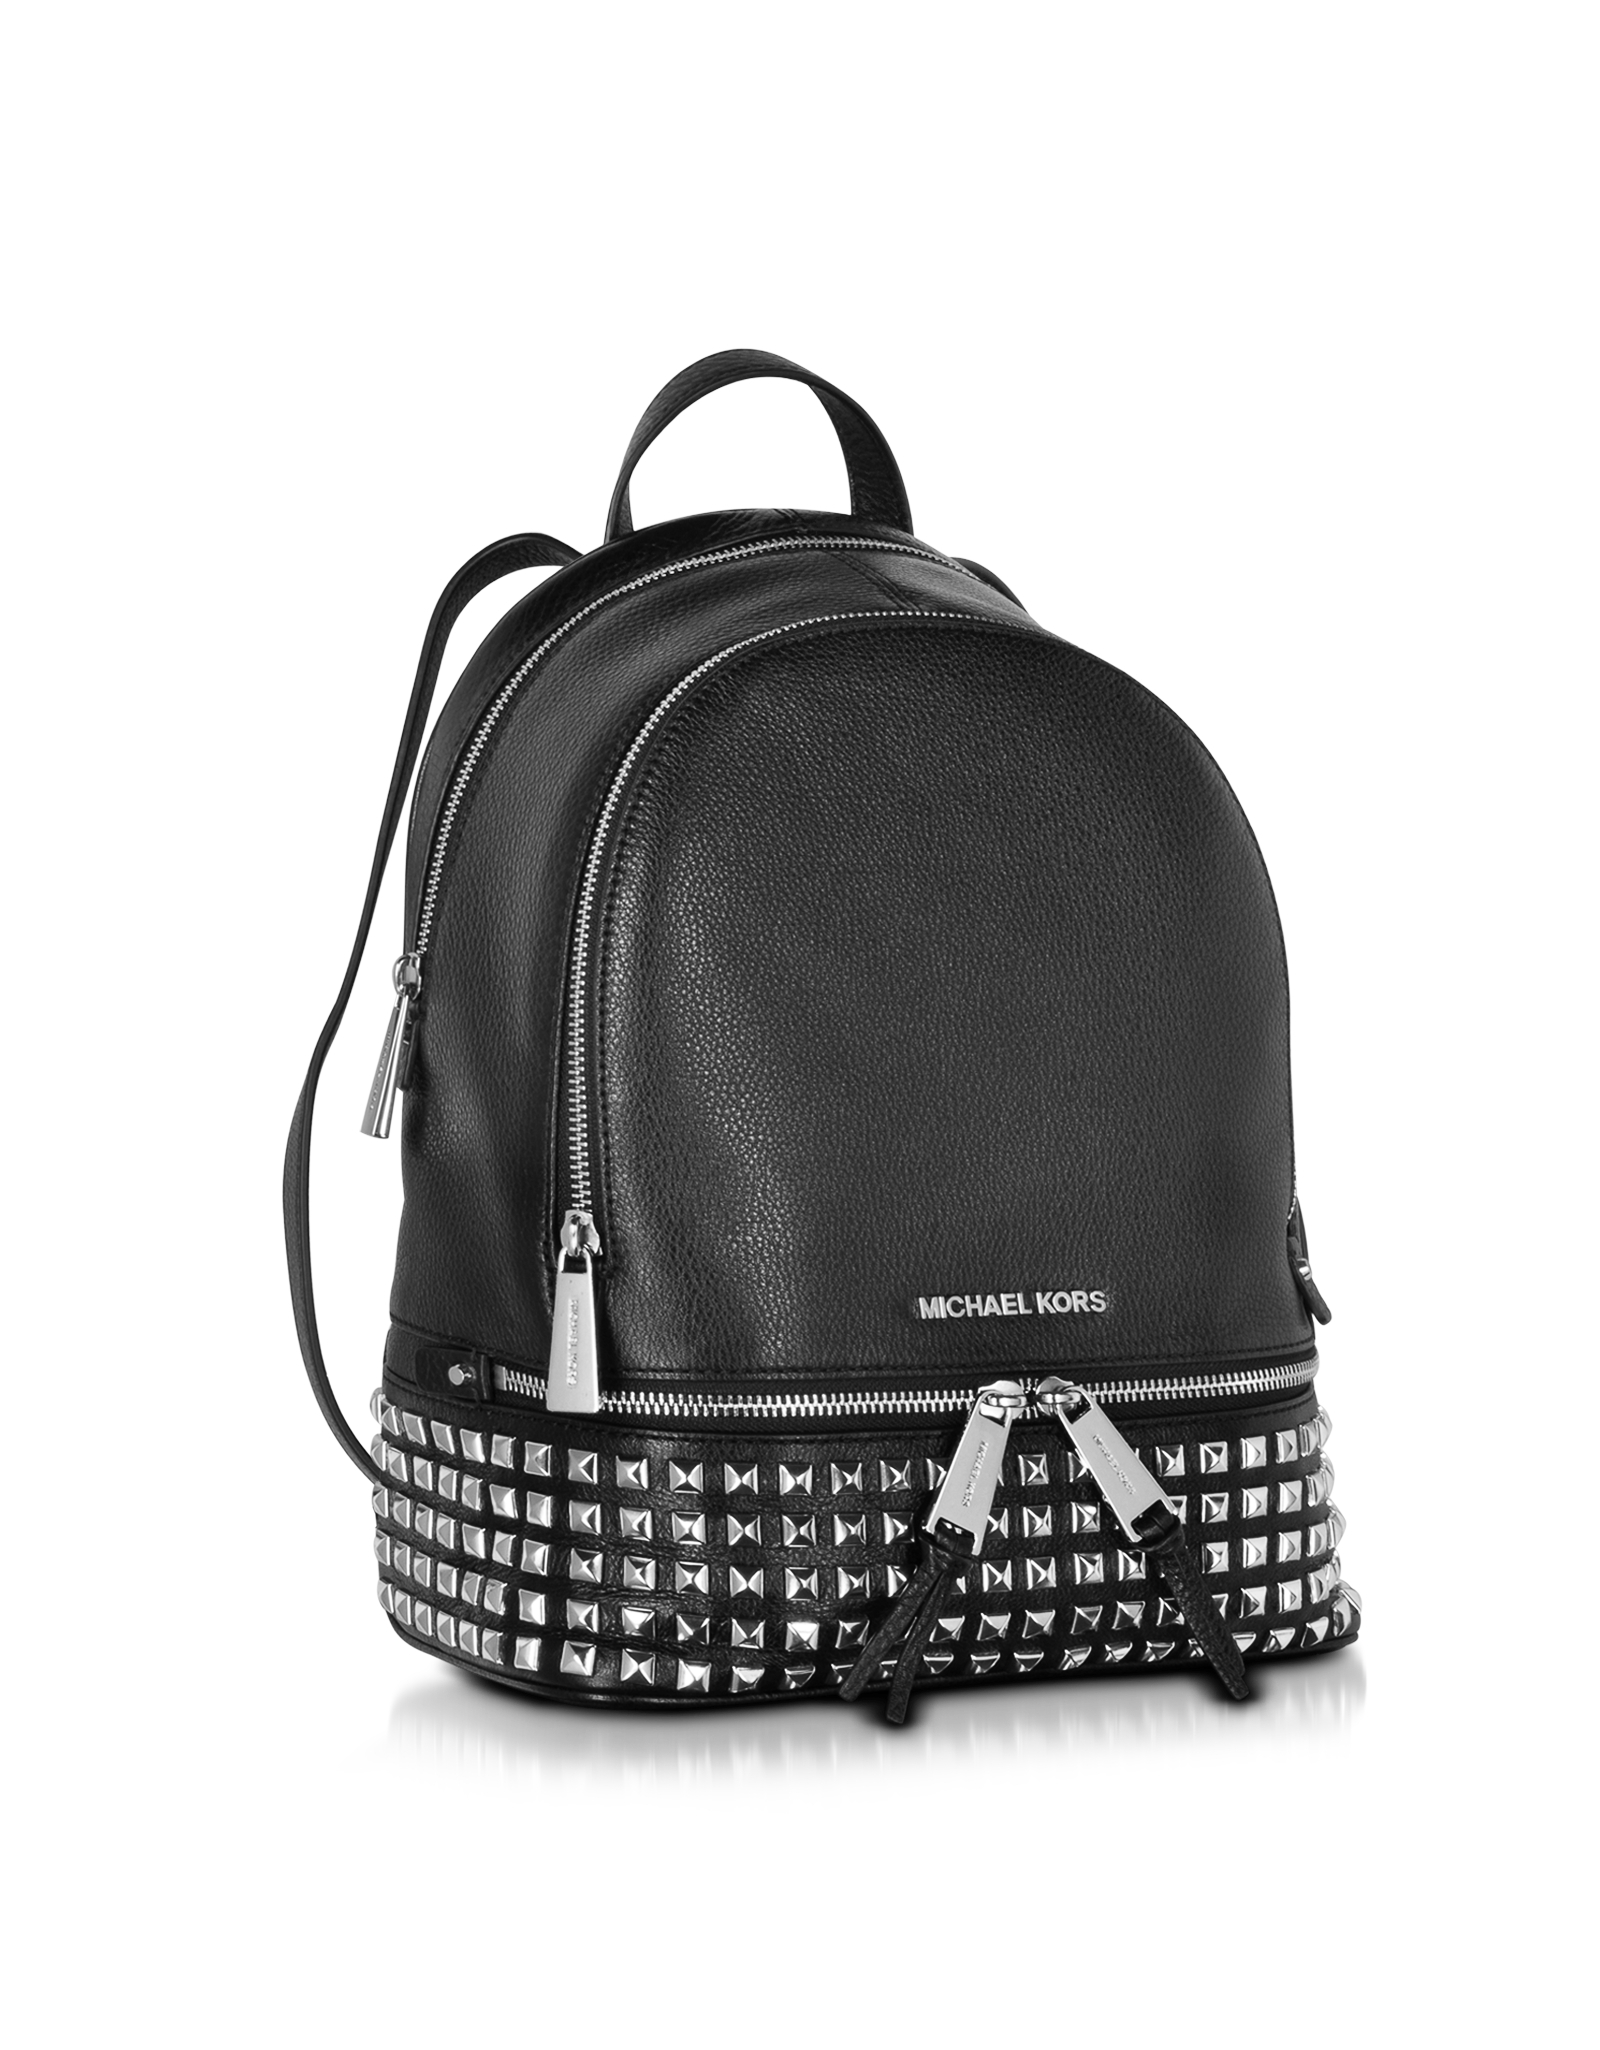 05b12b8380 Lyst - Michael Kors Rhea Zip Small Studded Leather Backpack in Black